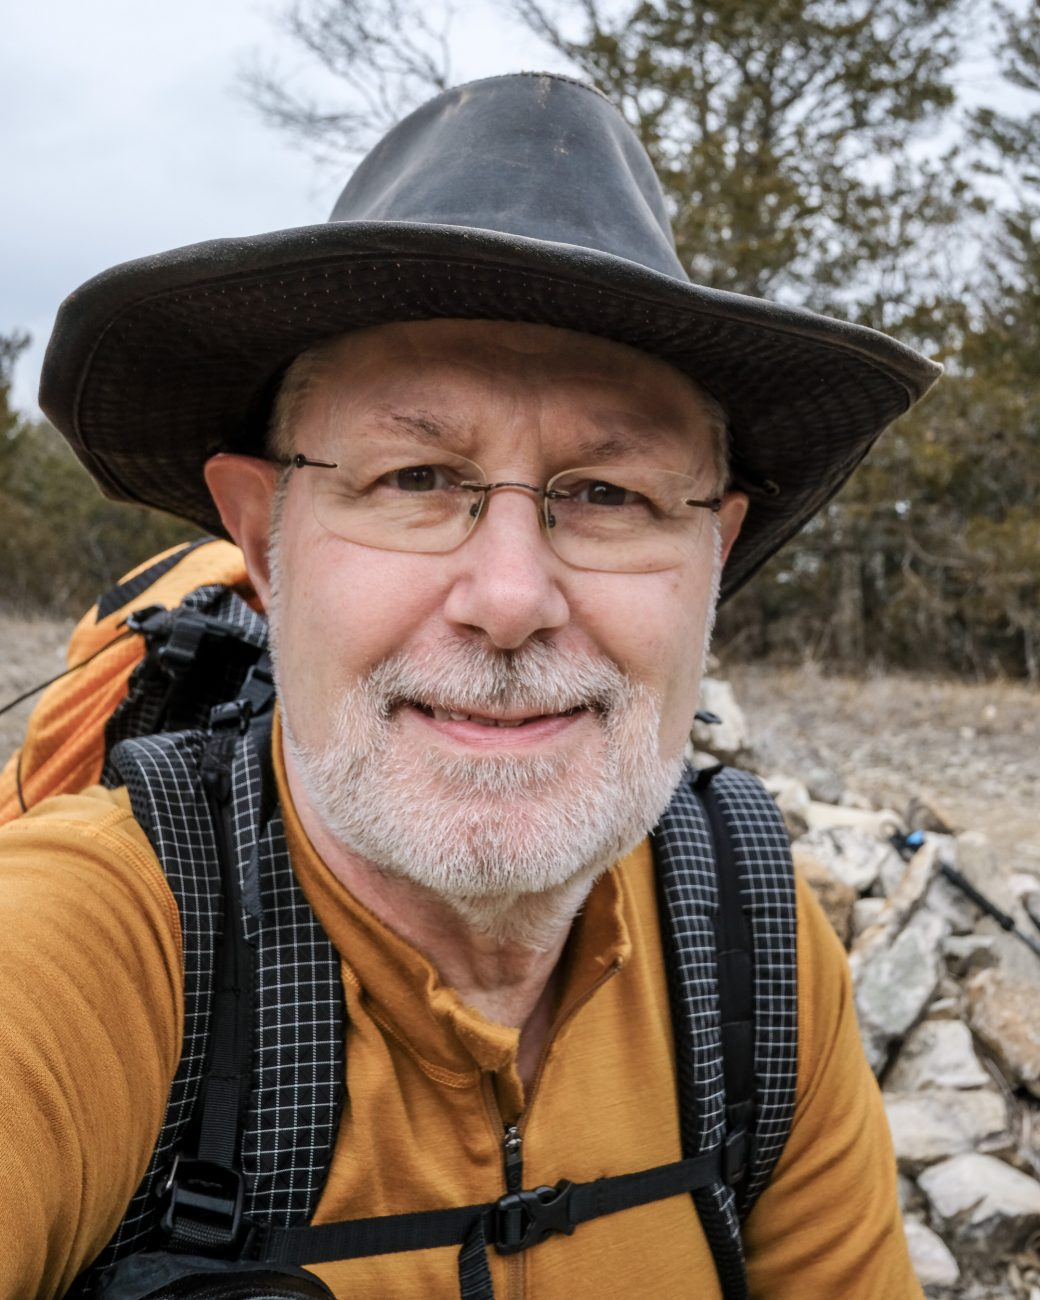 Photograph of Gary Allman in front of the Pole (Pete) Hollow Trail cairn, Hercules Glades Wilderness, Missouri. February 2021.